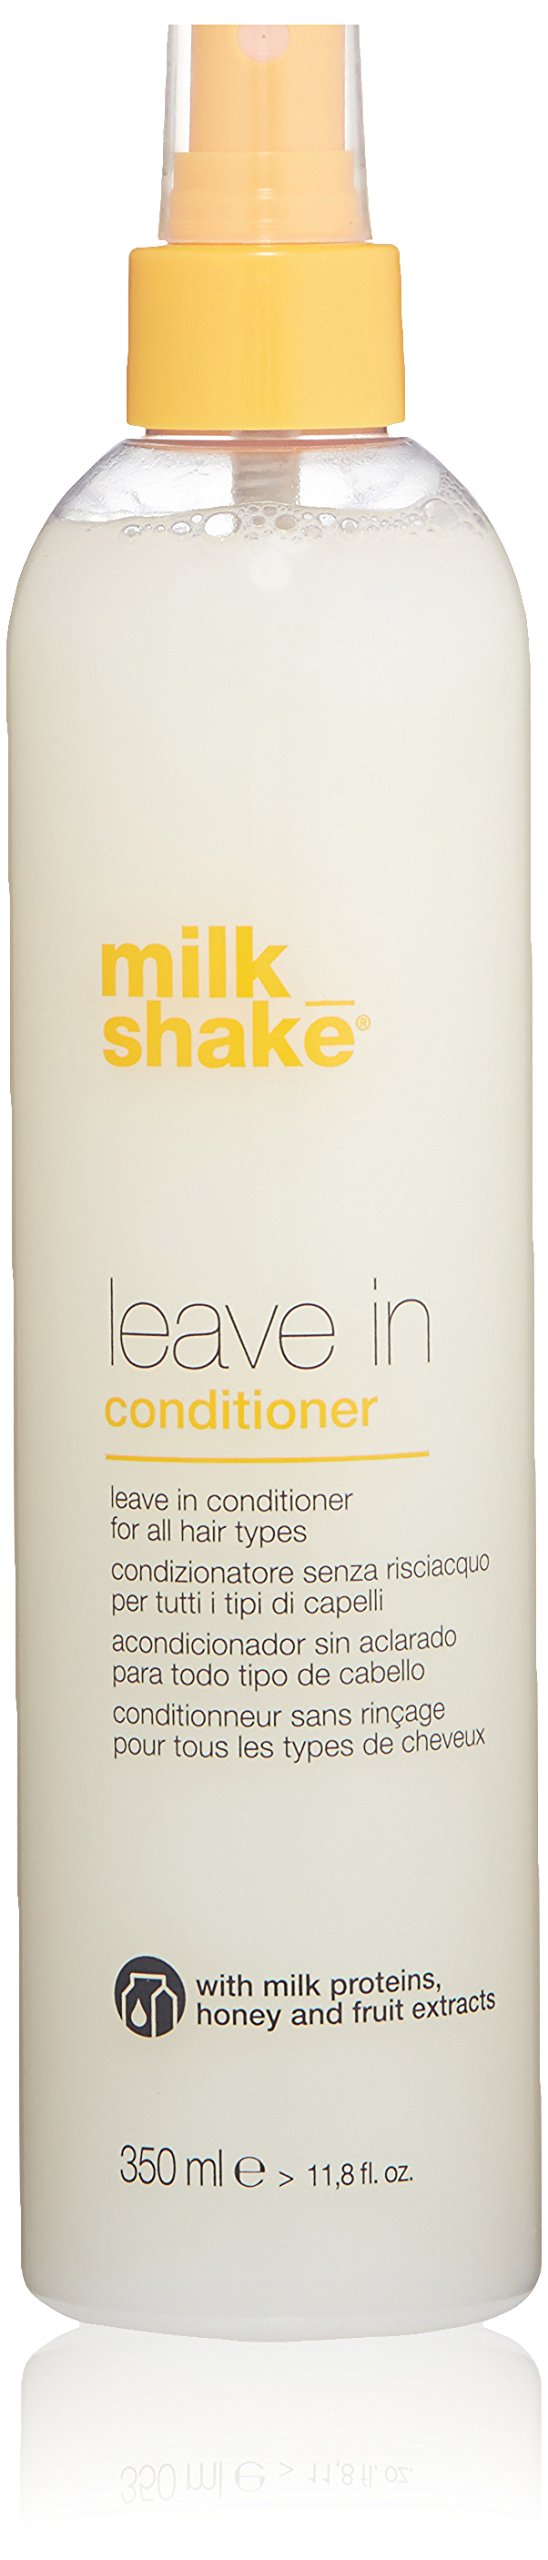 Milk Shake Leave in Conditioner 11.8 fl ounces by milk_shake